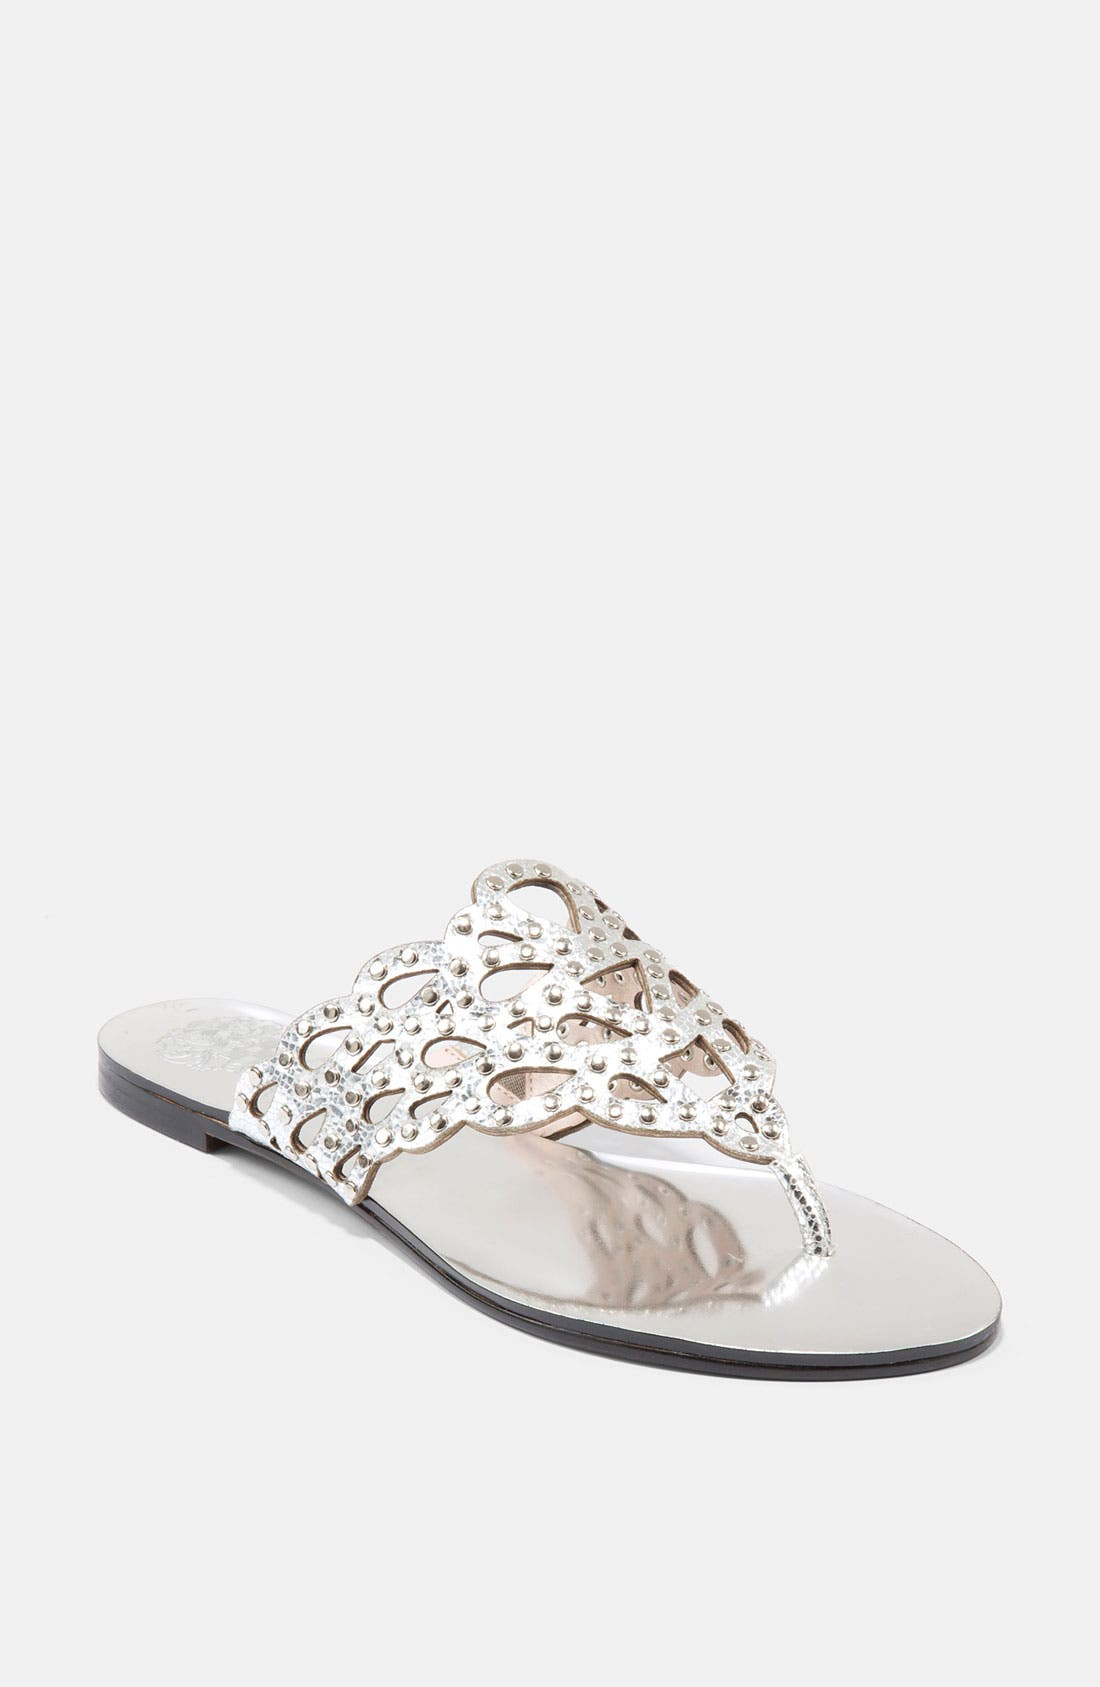 Alternate Image 1 Selected - Vince Camuto 'Elian' Sandal